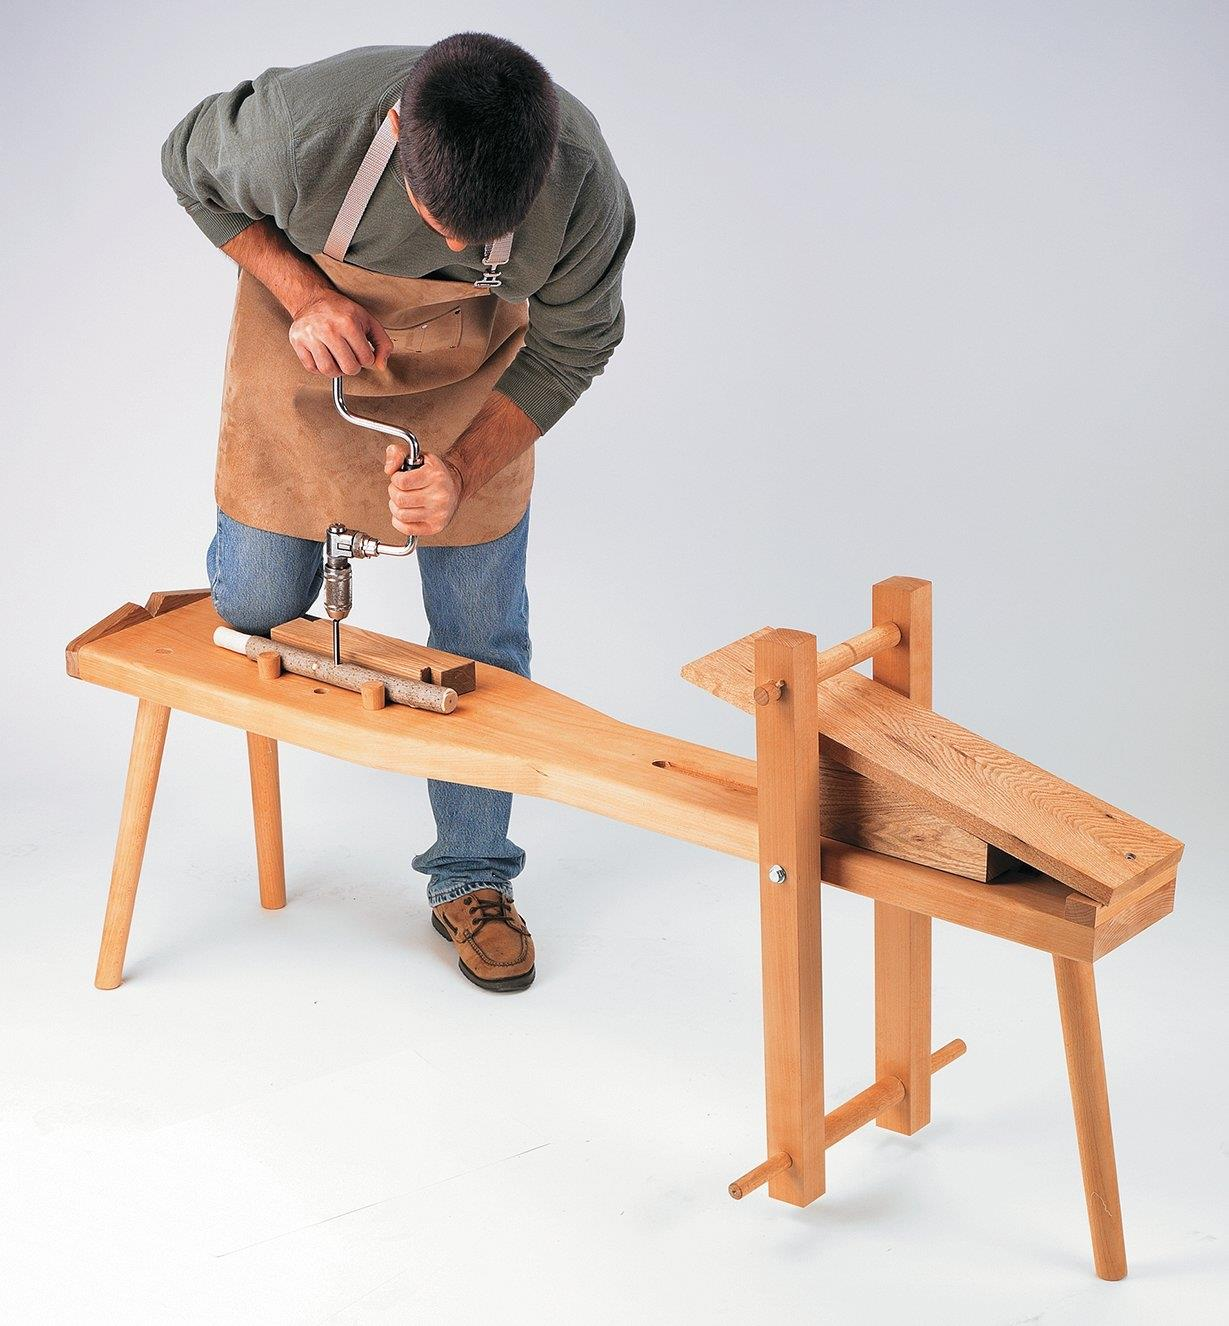 A man kneeling on a shaving horse uses a hand drill to bore a hole in a workpiece